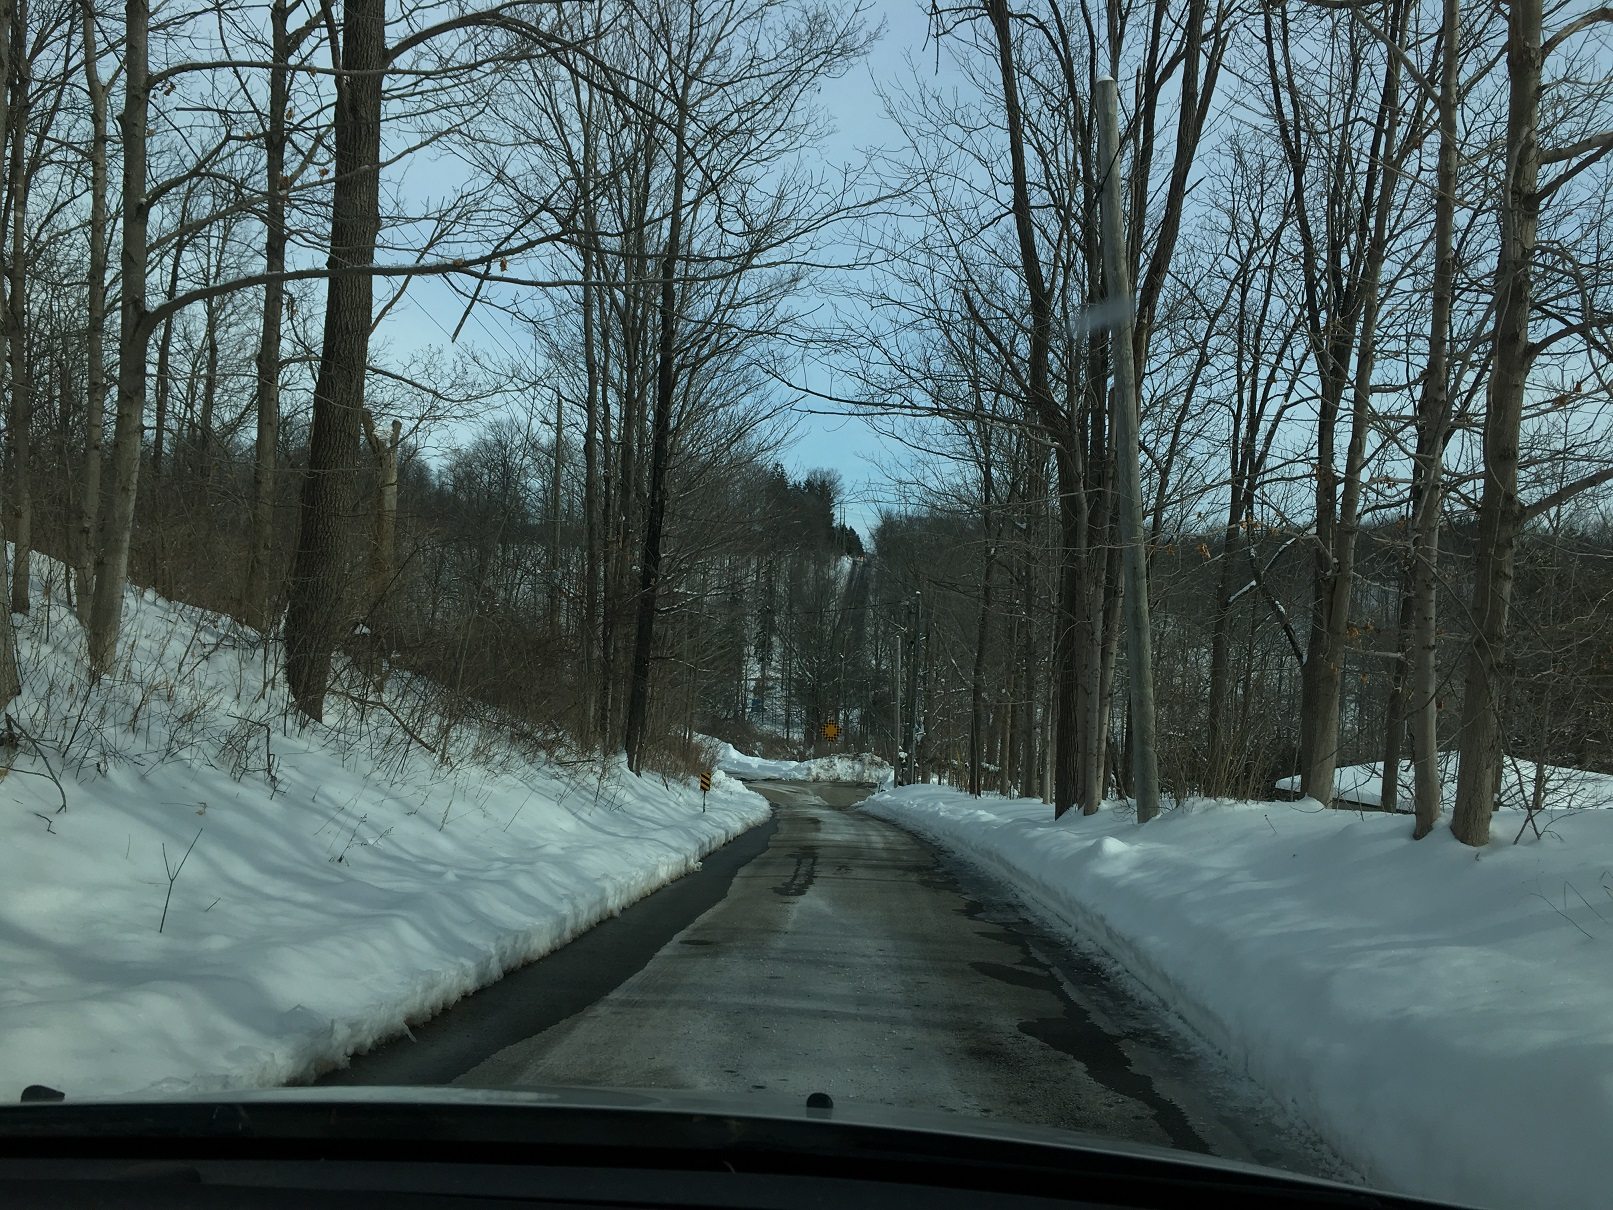 the driveway down to our house in winter, Beck Line, St Thomas